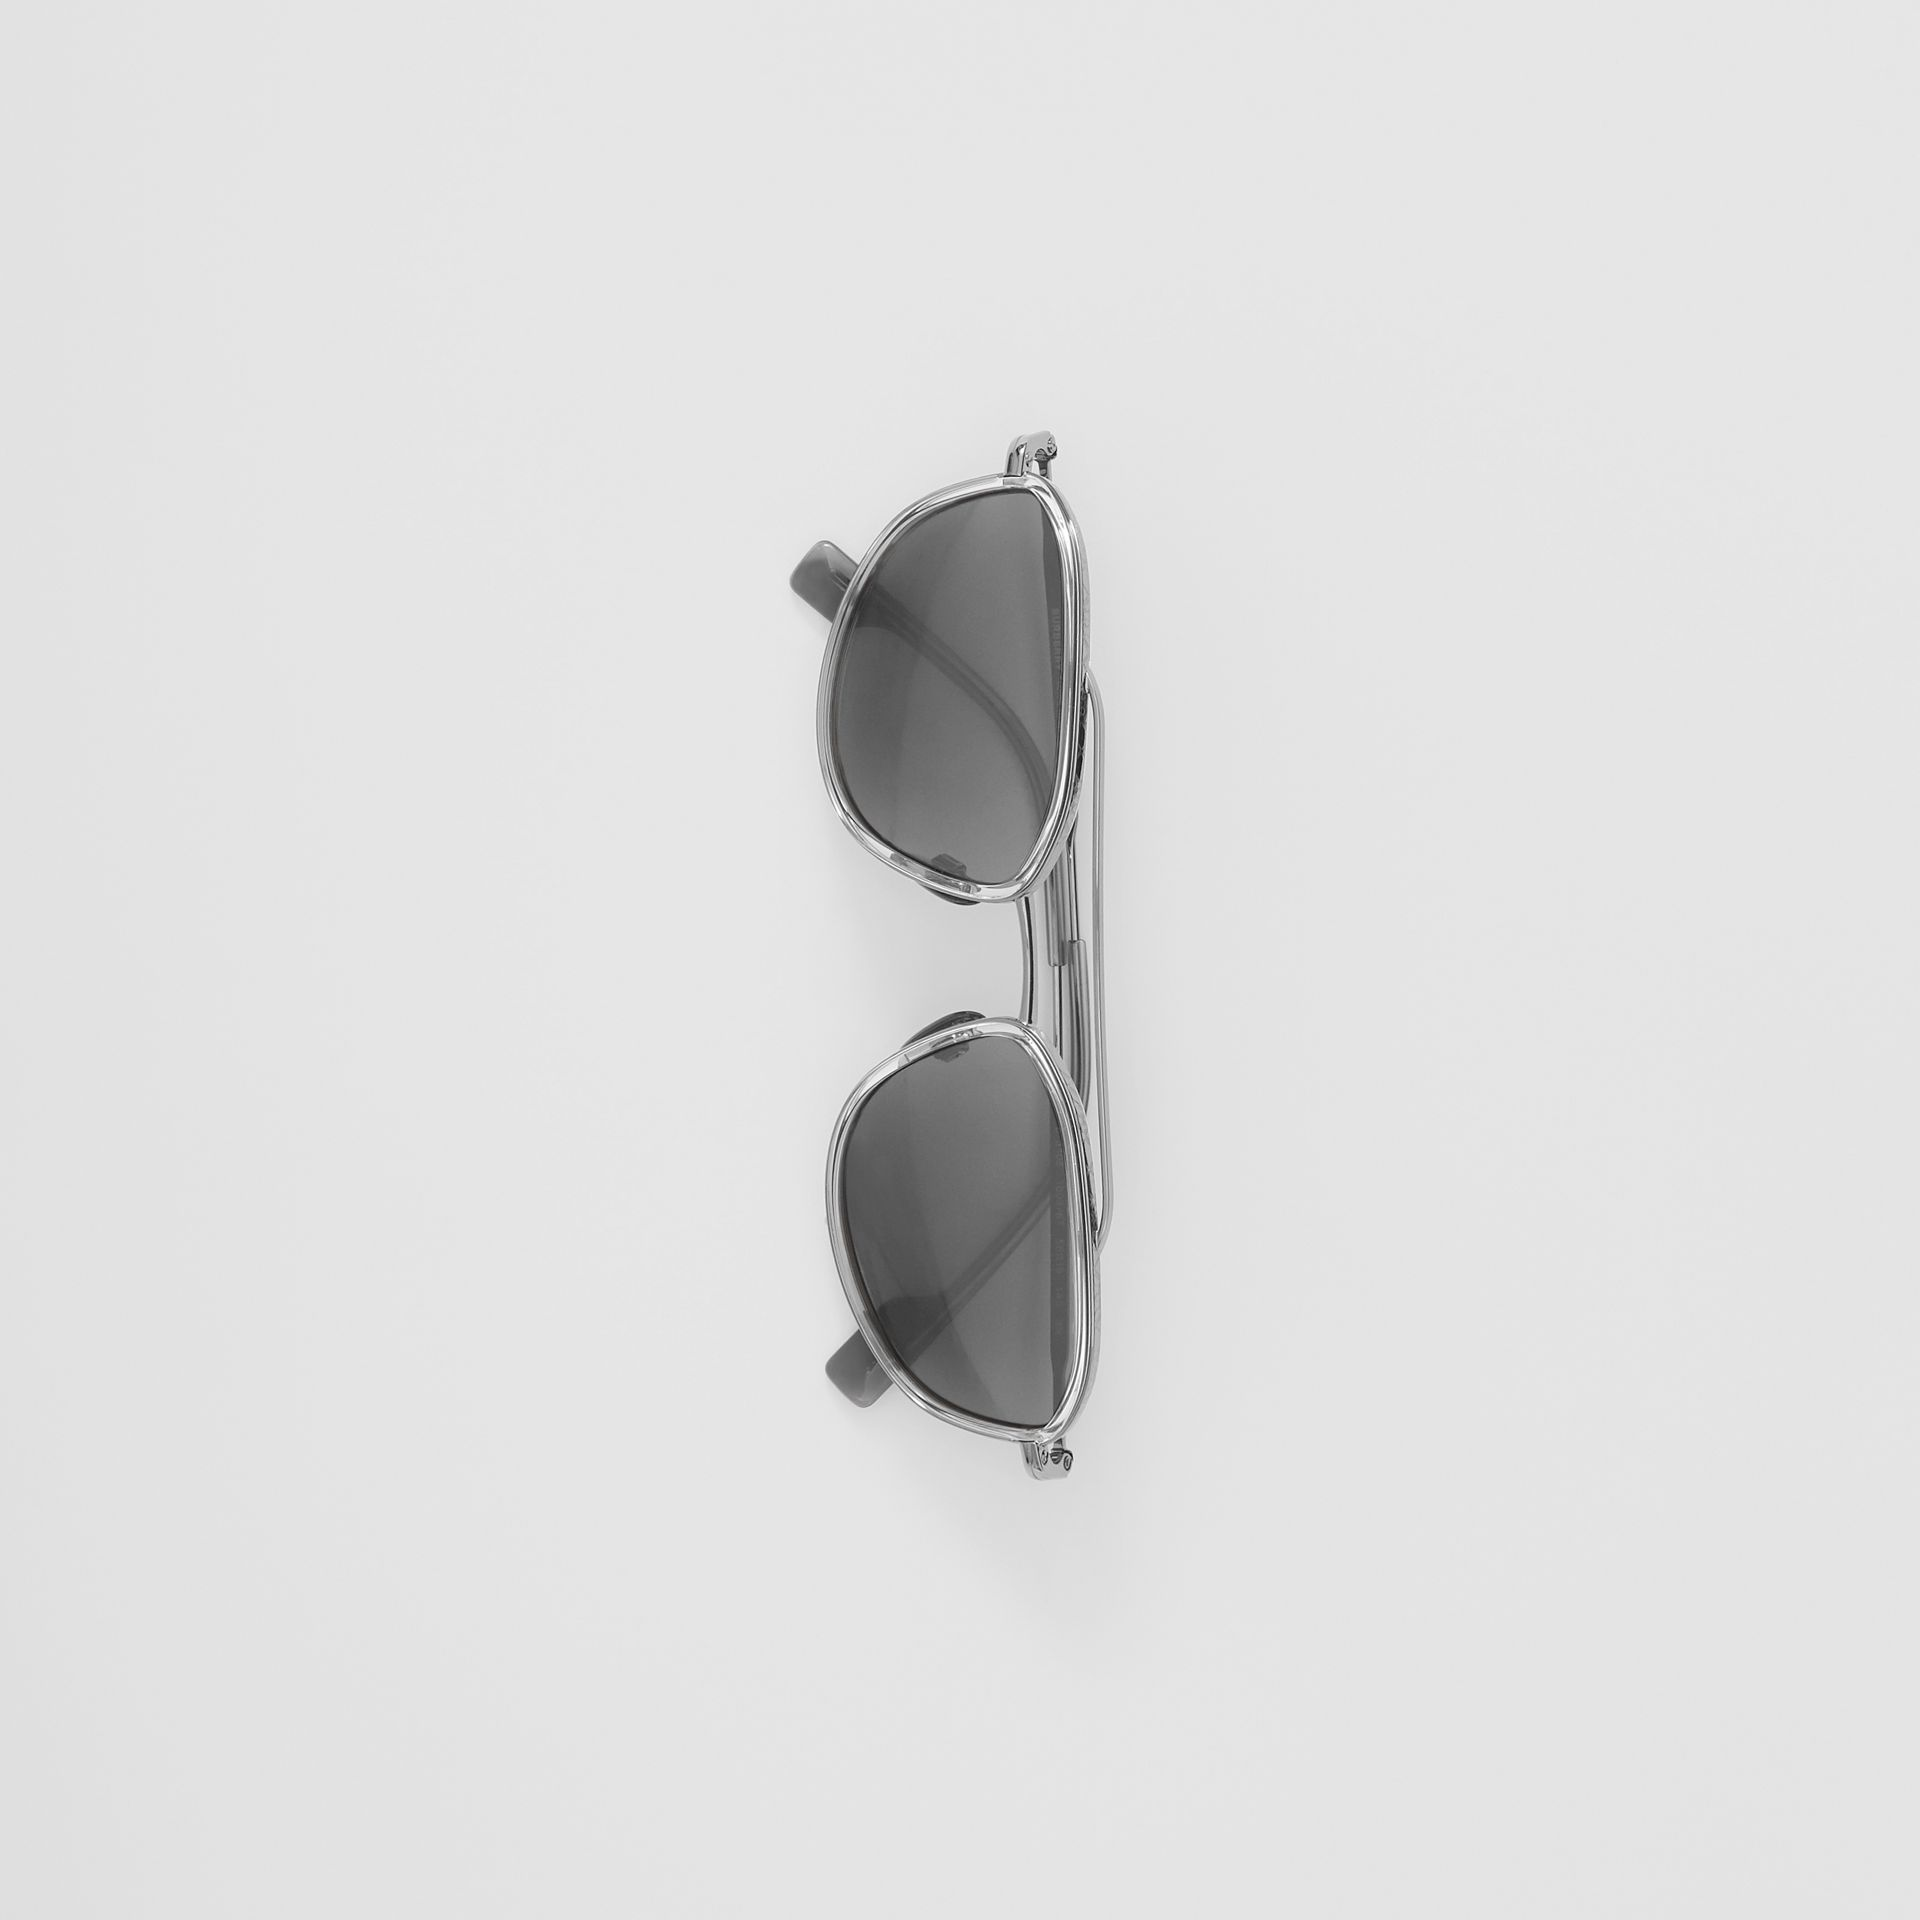 Geometric Navigator Sunglasses in Gunmetal Grey - Men | Burberry - gallery image 2